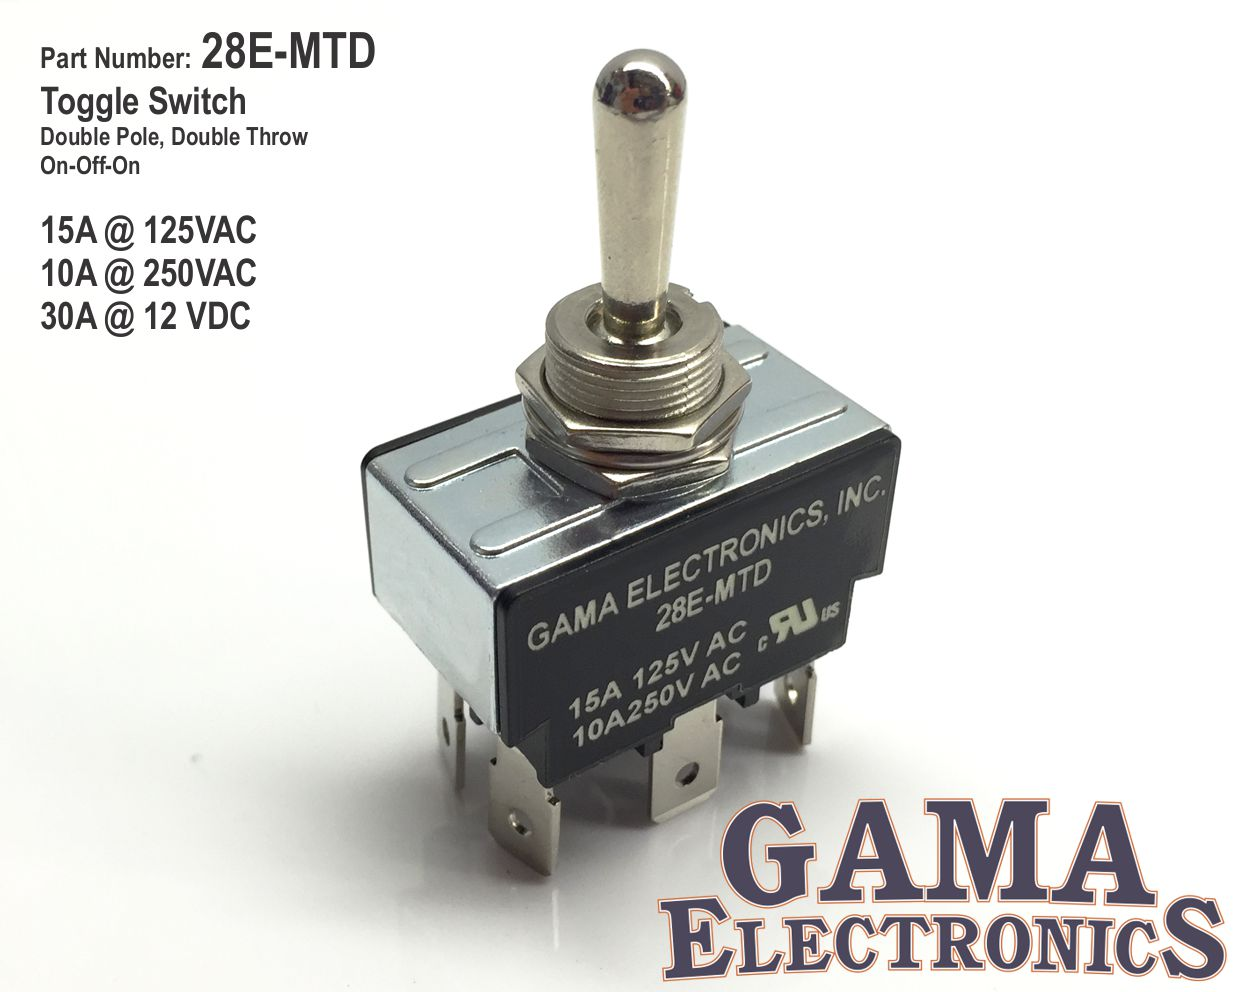 Double Pole Toggle Switch Wiring Diagram from www.gamainc.com